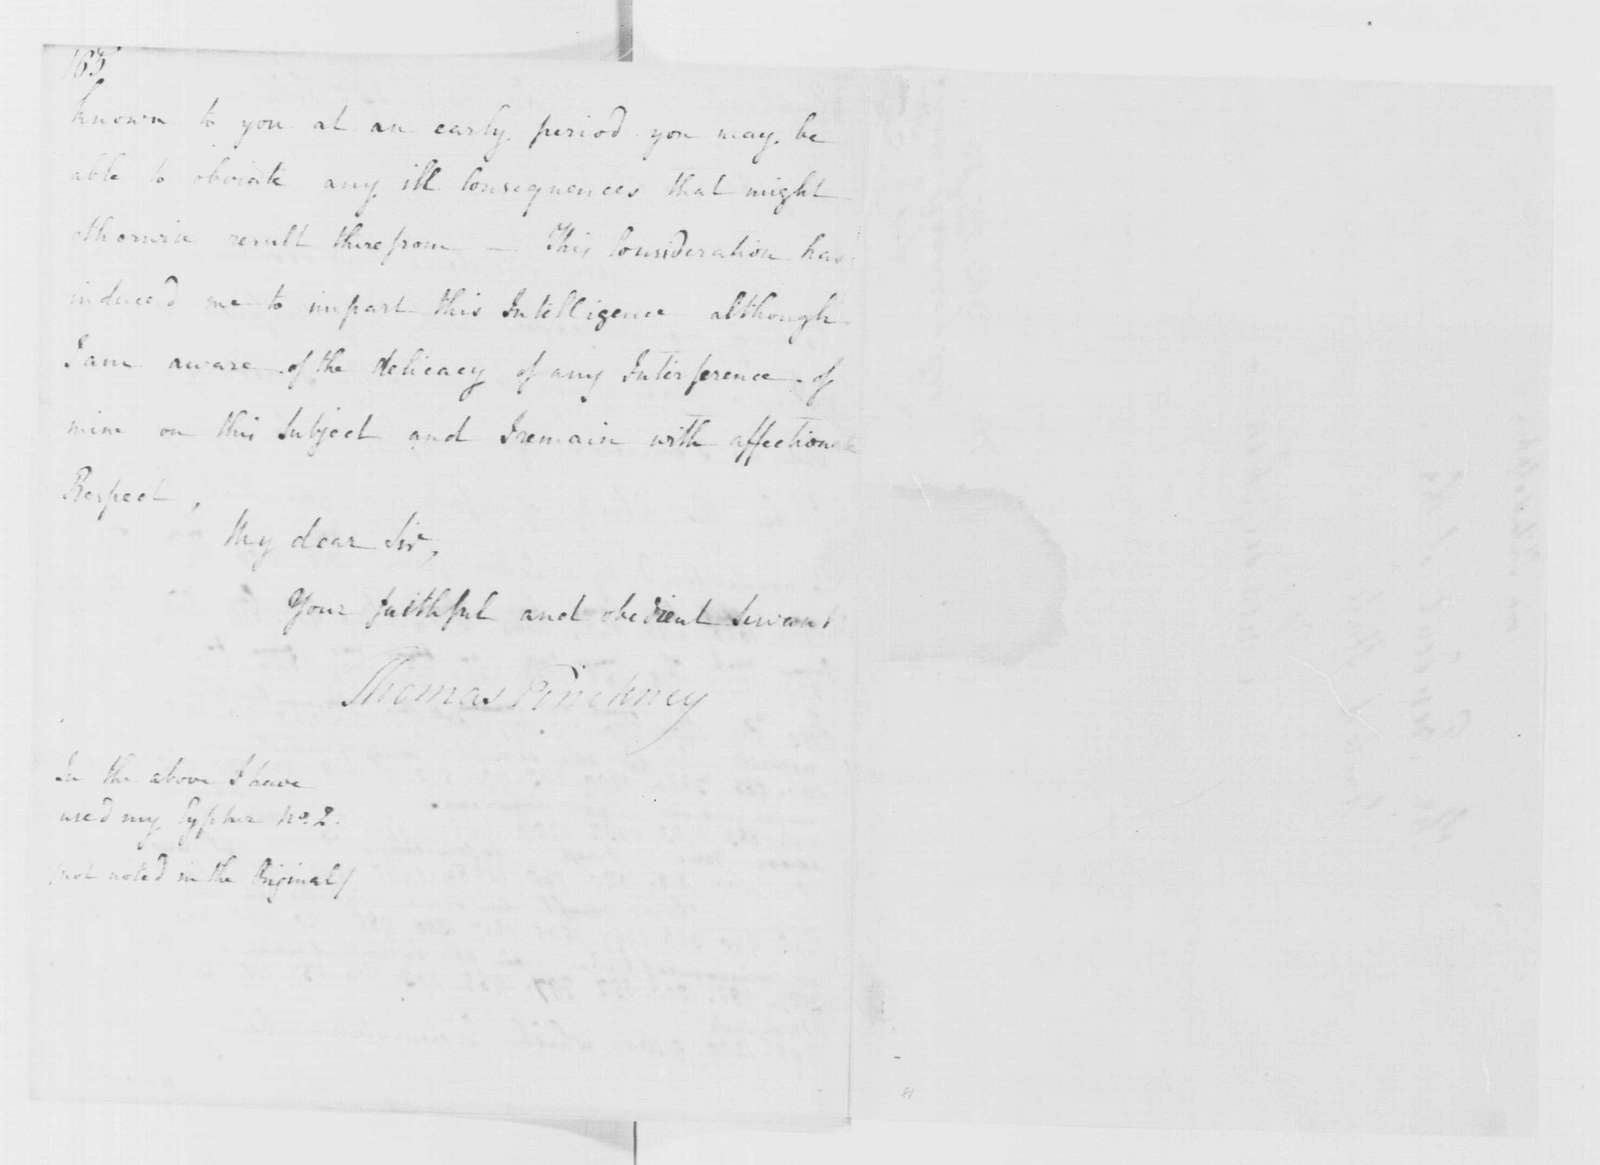 George Washington Papers, Series 4, General Correspondence: Thomas Pinckney to George Washington, February 25, 1795, in Code, with Decoded Copy